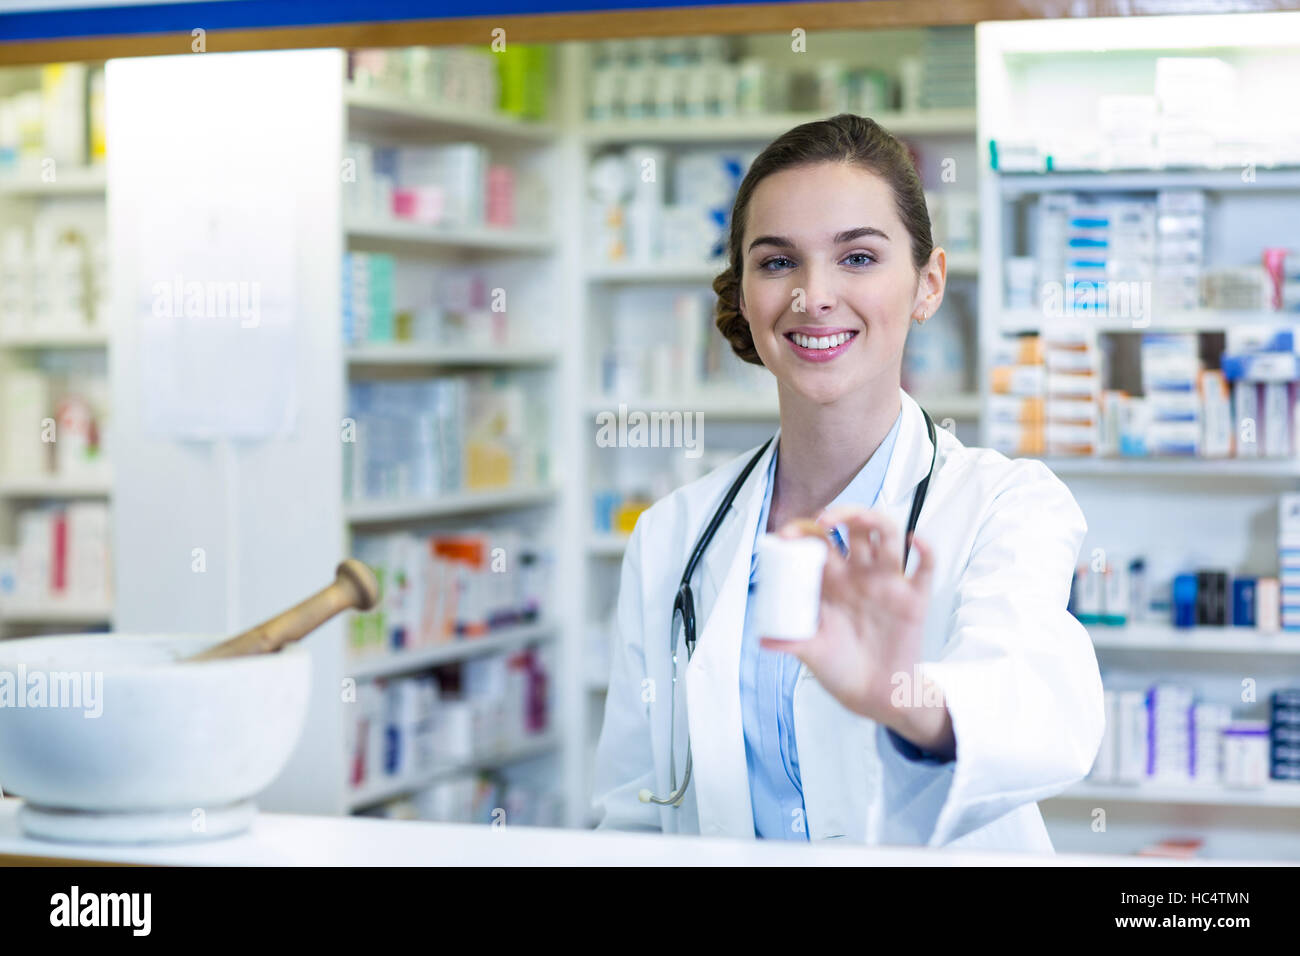 Smiling pharmacist showing medicine container in pharmacy - Stock Image